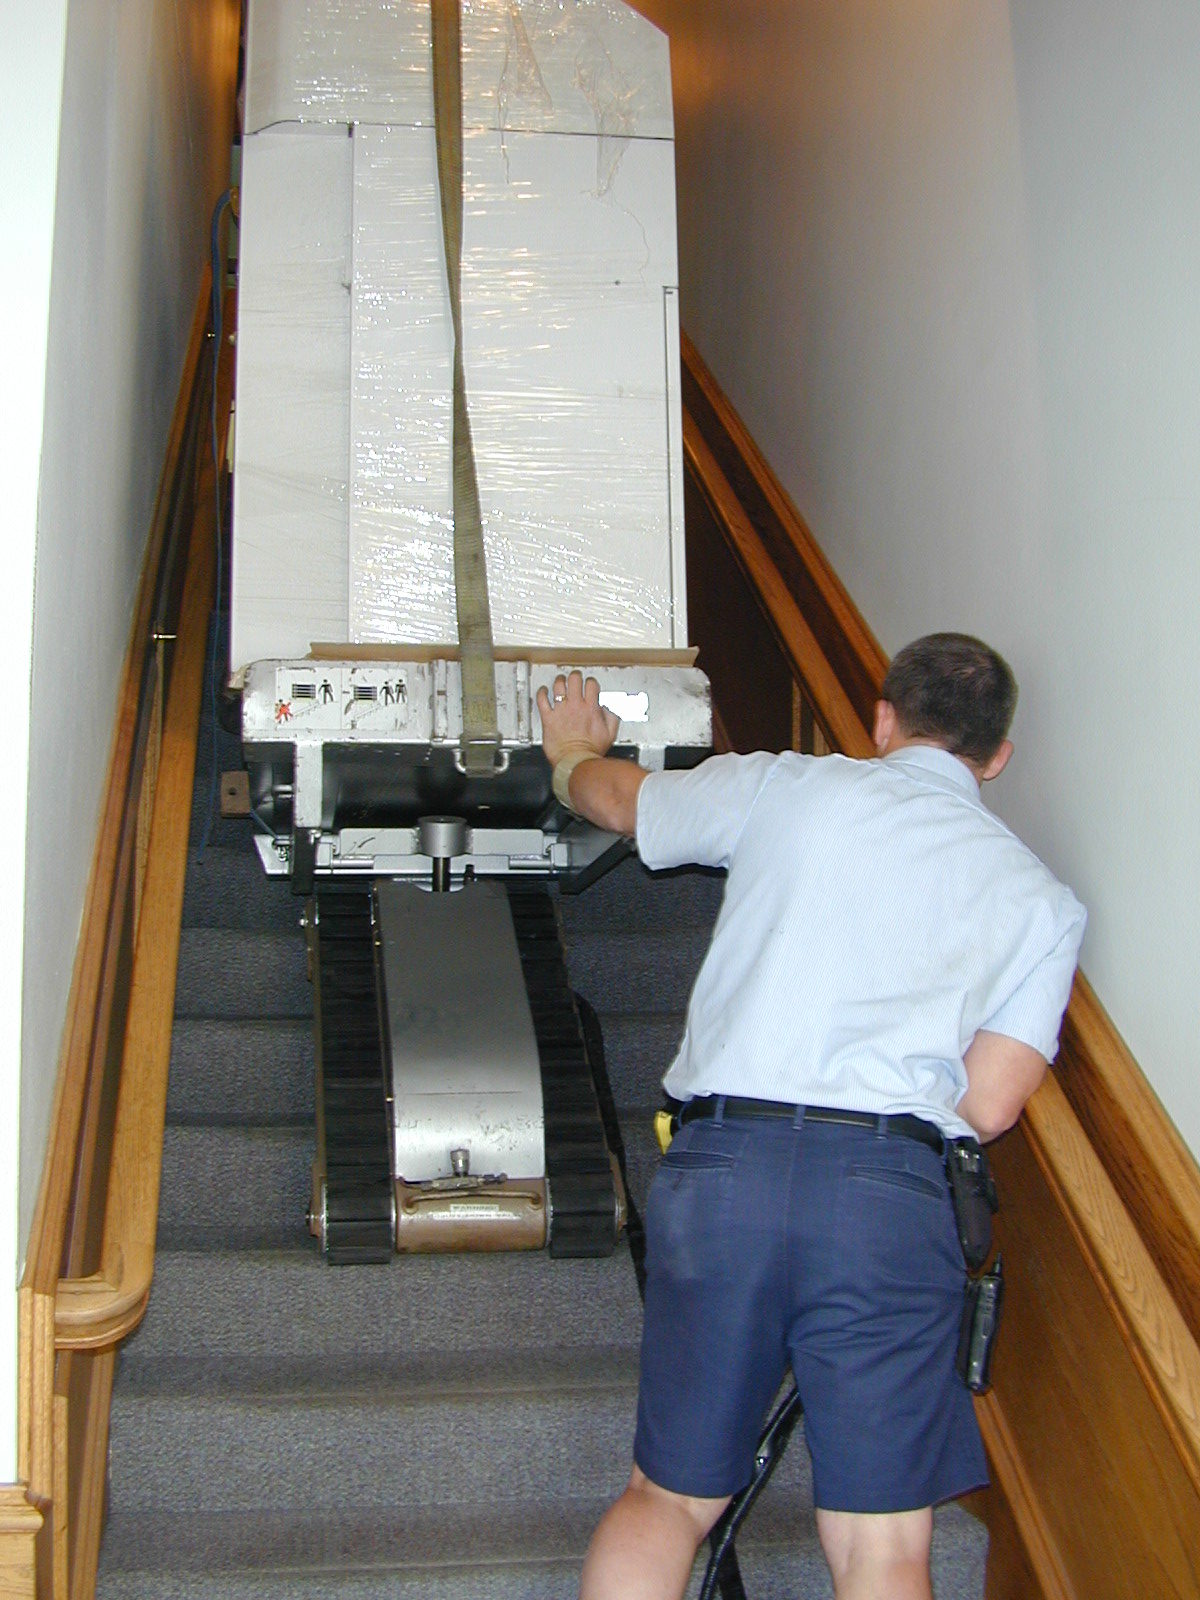 Lile office moving equipment